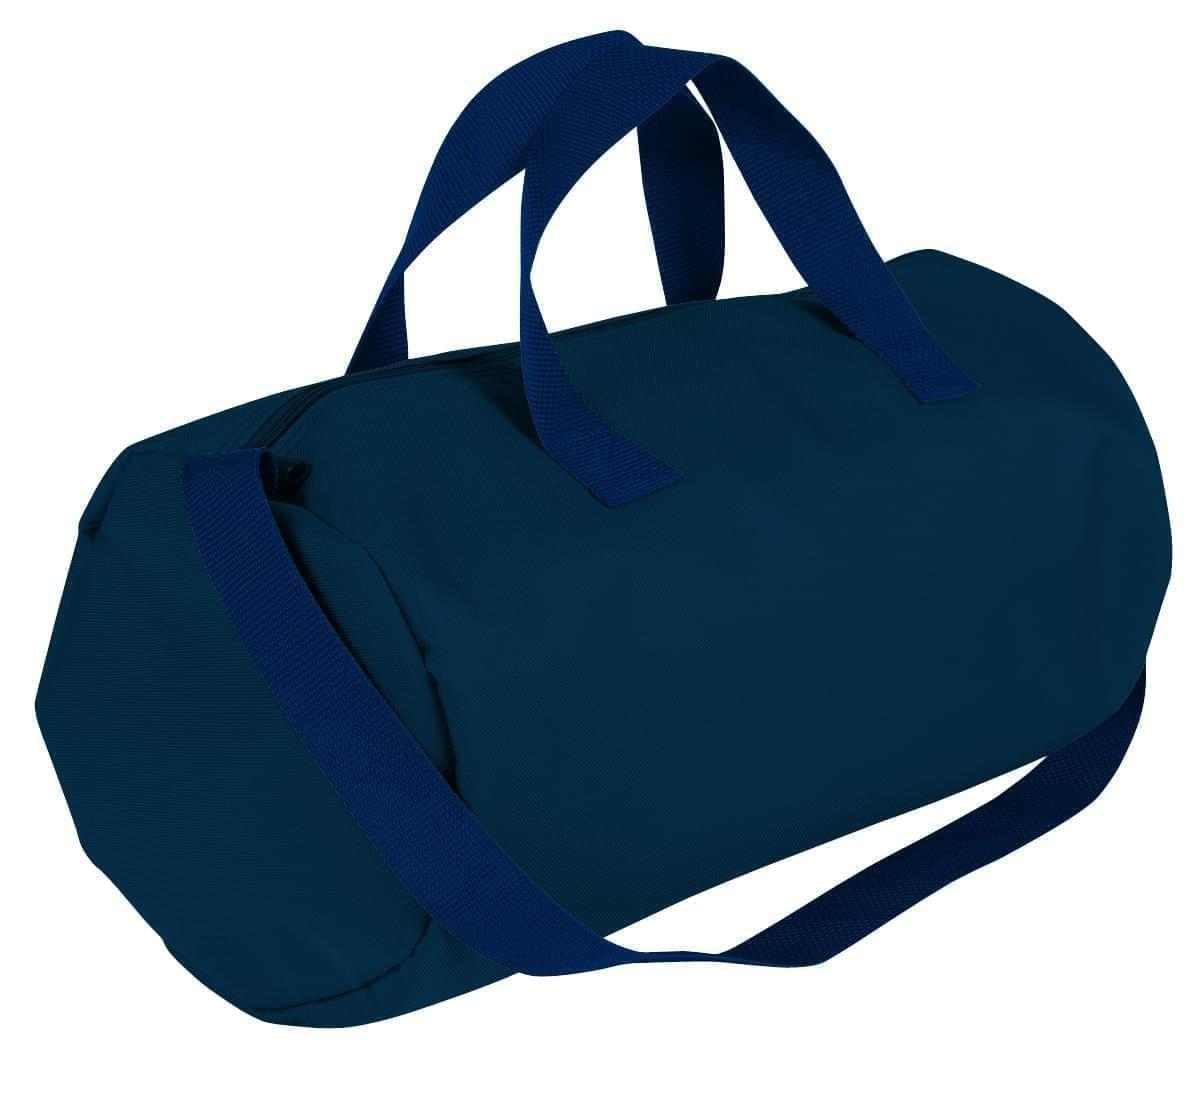 USA Made Nylon Poly Gym Roll Bags, Navy-Navy, ROCX31AAWZ